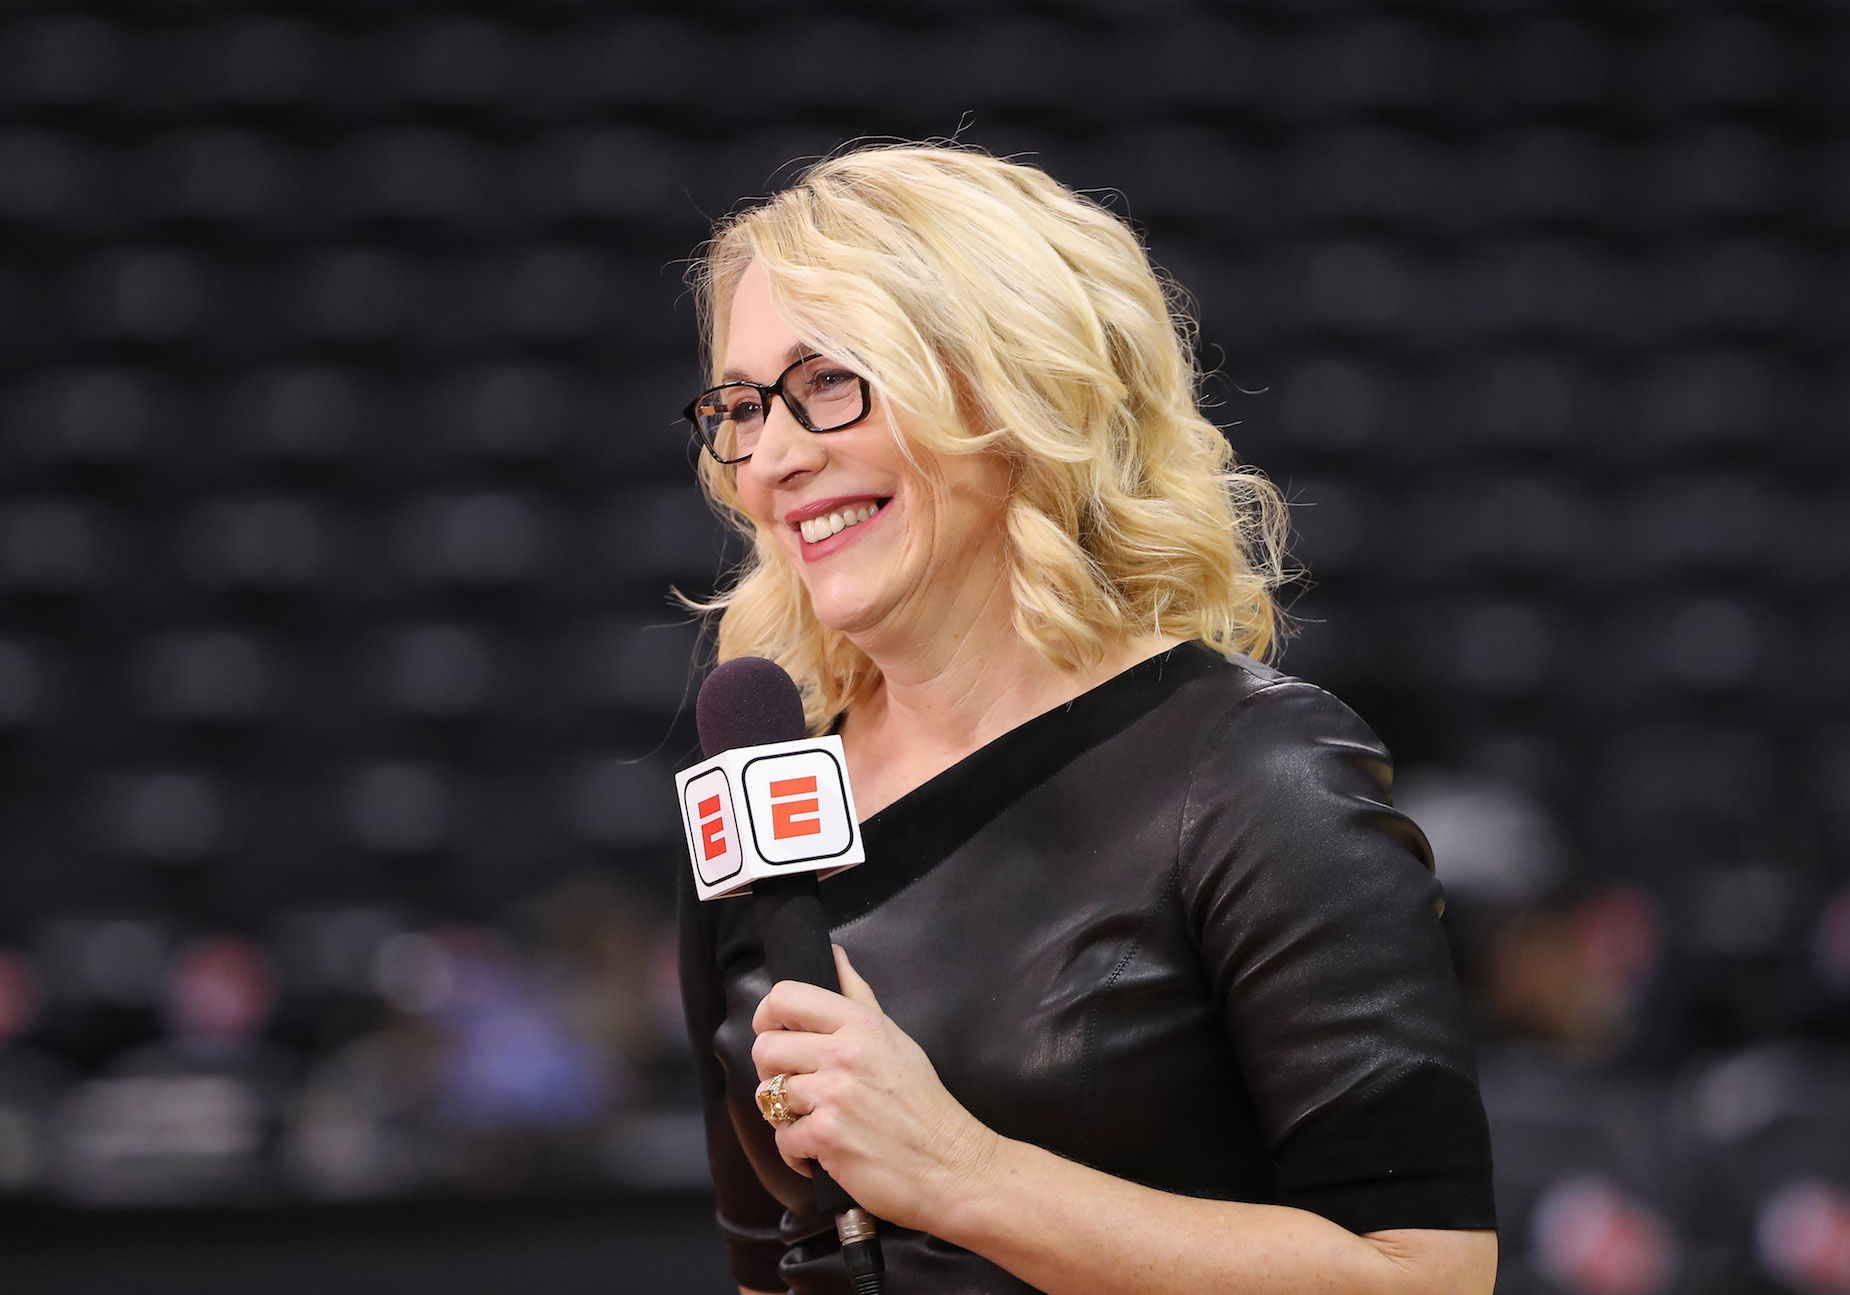 ESPN's Doris Burke was a talented basketball player before becoming a beloved broadcaster.